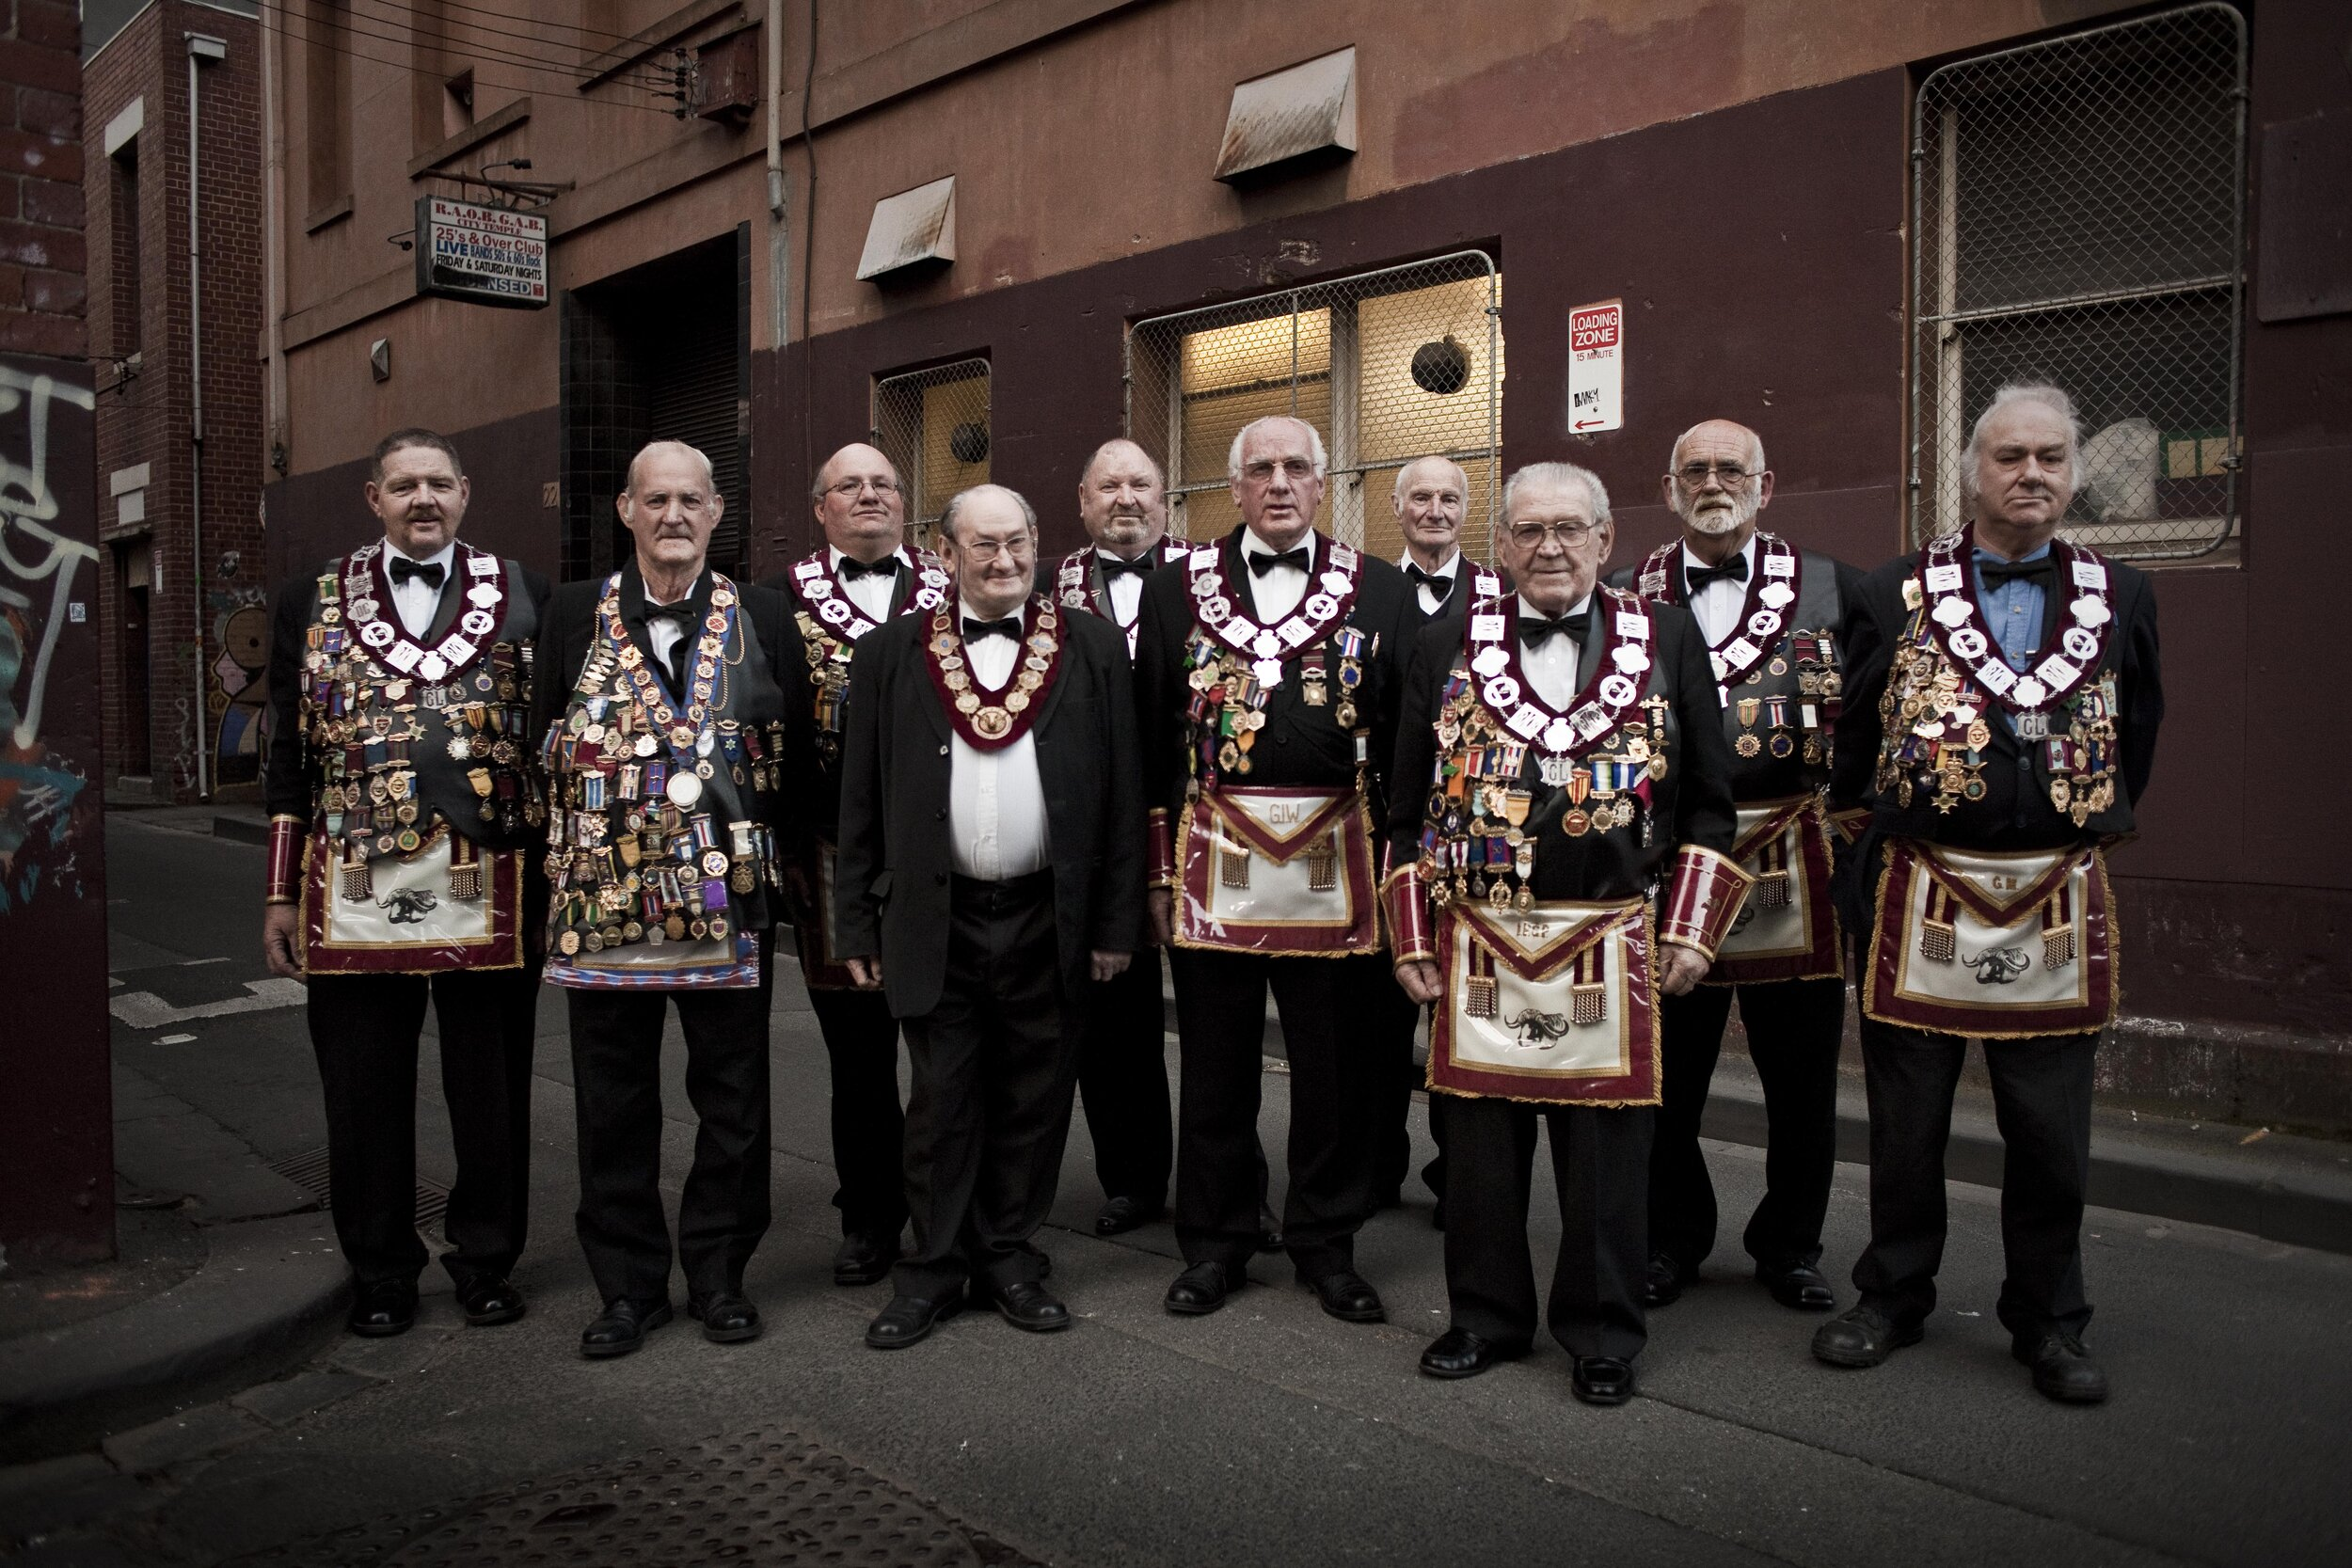 "In the late 1950s there were more than 12,000 members at 340 lodges. There are now 32 lodges of mostly elderly members, it's one of Victoria's oldest social clubs, the Royal Antediluvian Order of Buffaloes, or the Buffaloes for short. I took this group portrait of the brothers as they refer to each other in 2010 in front of their clubhouse opposite Guilford lane which they had occupied since the 1950s, sadly they recently had to sell up and this year have relocated somewhere out in the burbs. I fear the wonderful old building with it's ballroom, bar and club room for secret men's business, beautiful old wood-panelled offices and change rooms will be pulled down and replaced by yet another bland apartment block, although the other side of the lane is heritage protected, unfortunately the club house side isn't. Sometimes they are referred to as the ""poor man's Freemasons"", whose members like to dress in ritual garb, and talk, sing and drink together, support sick brethren and raise money for charity. Good-luck brothers!"